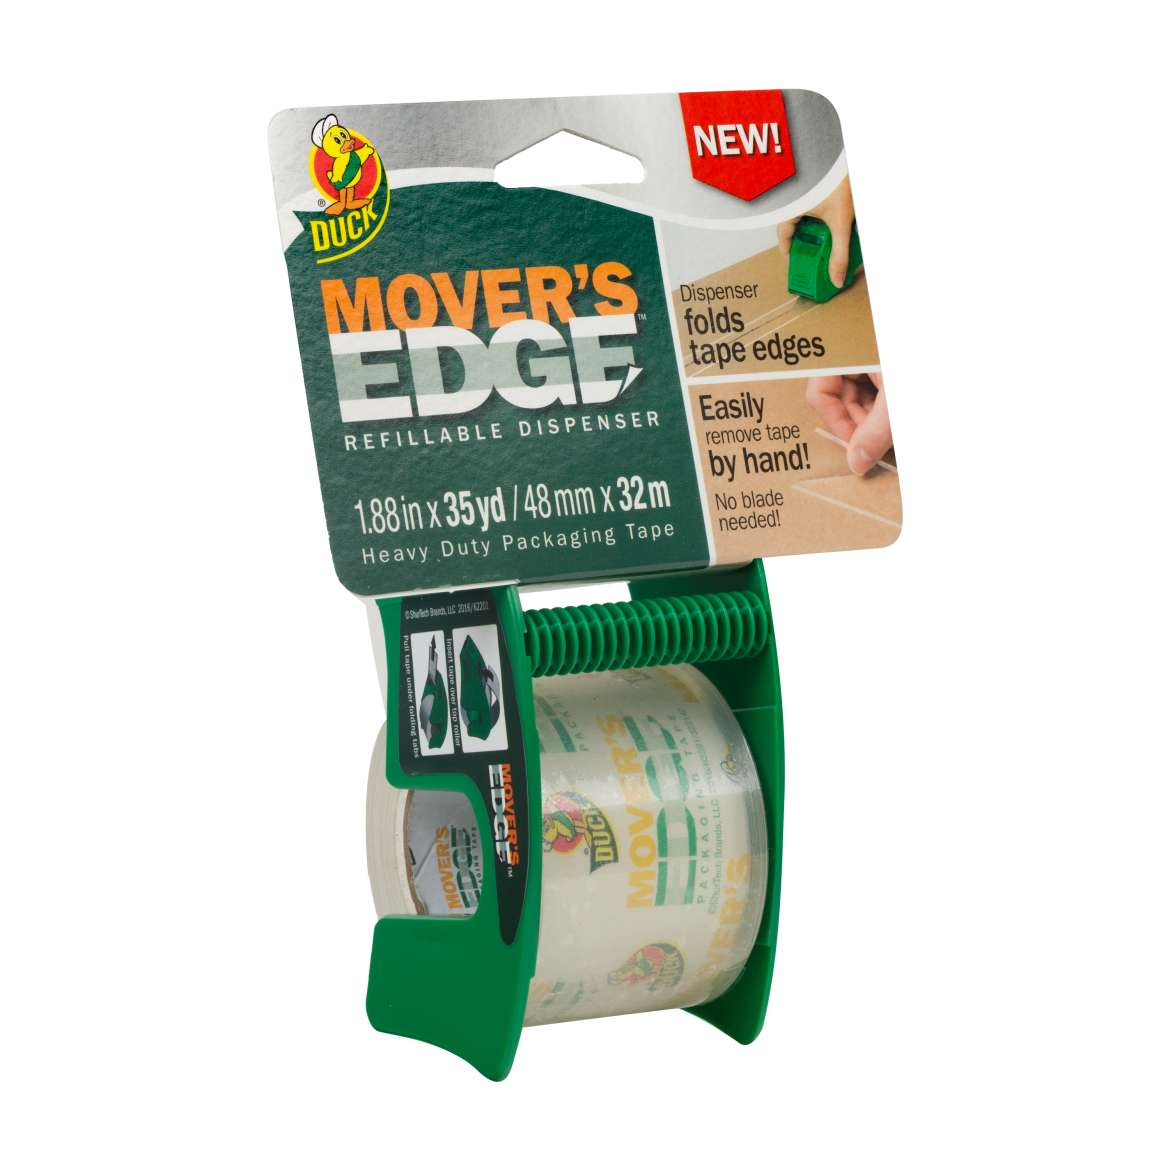 Duck® Brand Movers Edge Refillable Dispenser - Clear, 1.88 in. x 35 yd. Image